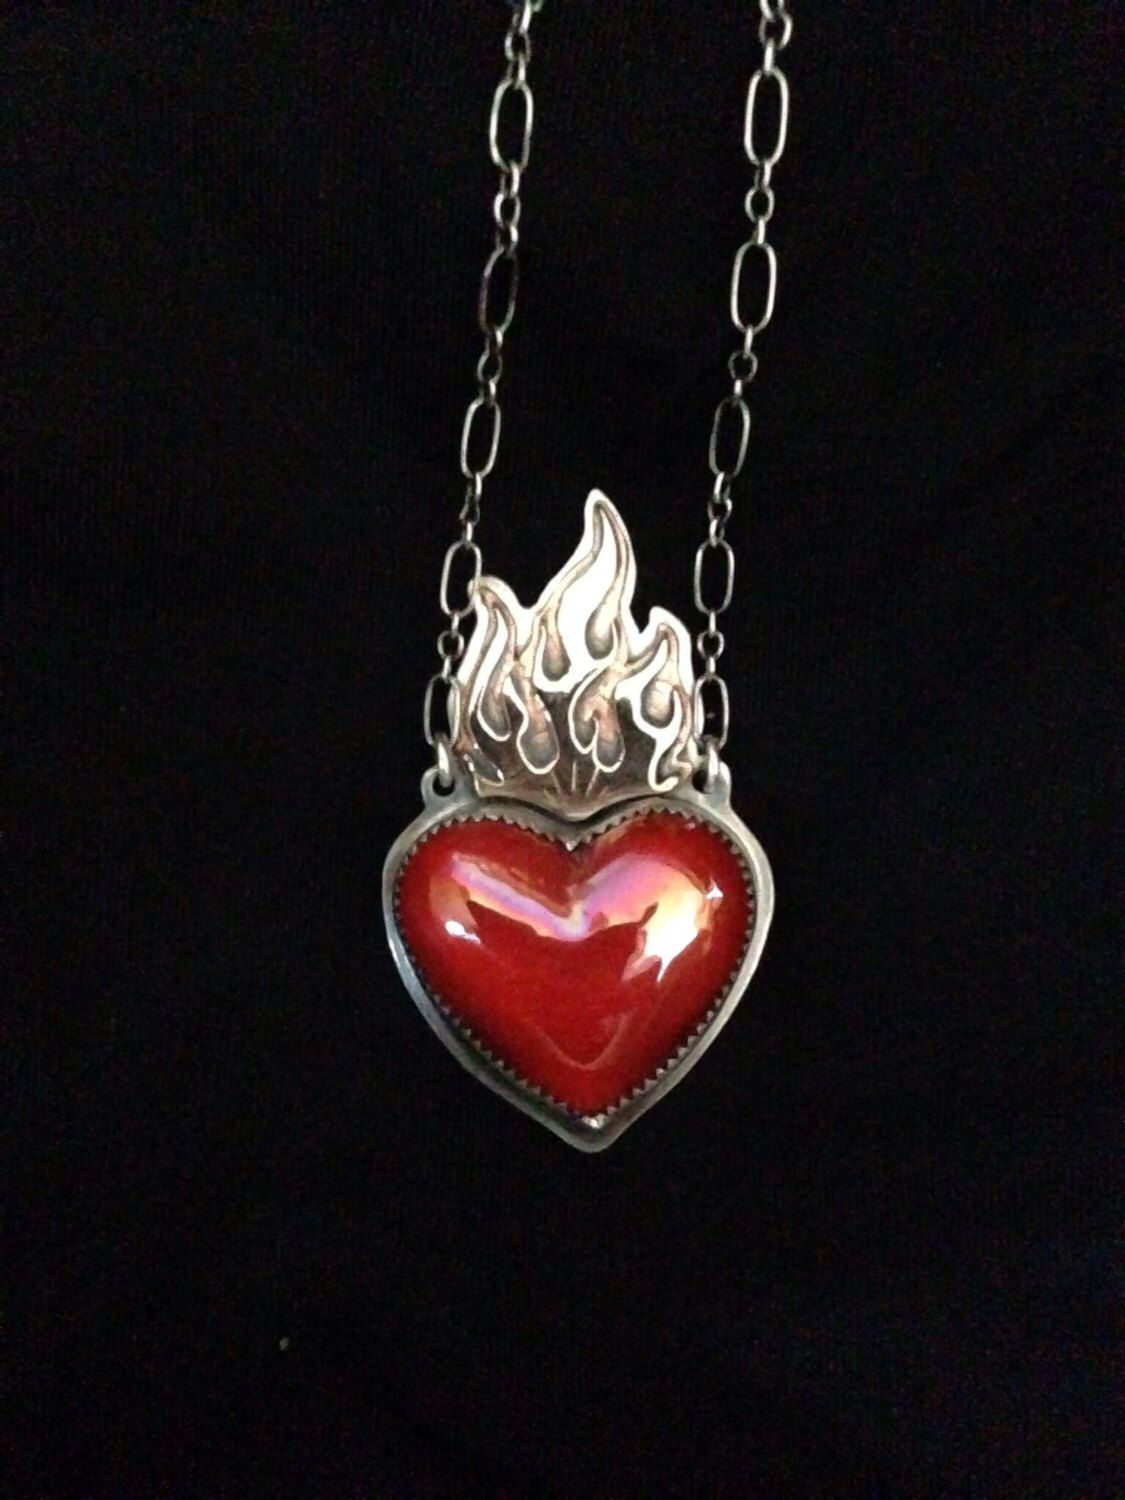 Sacred heart mixed metal necklace by sloane99 on etsy httpswww sacred heart mixed metal necklace by sloane99 on etsy httpsetsy aloadofball Images